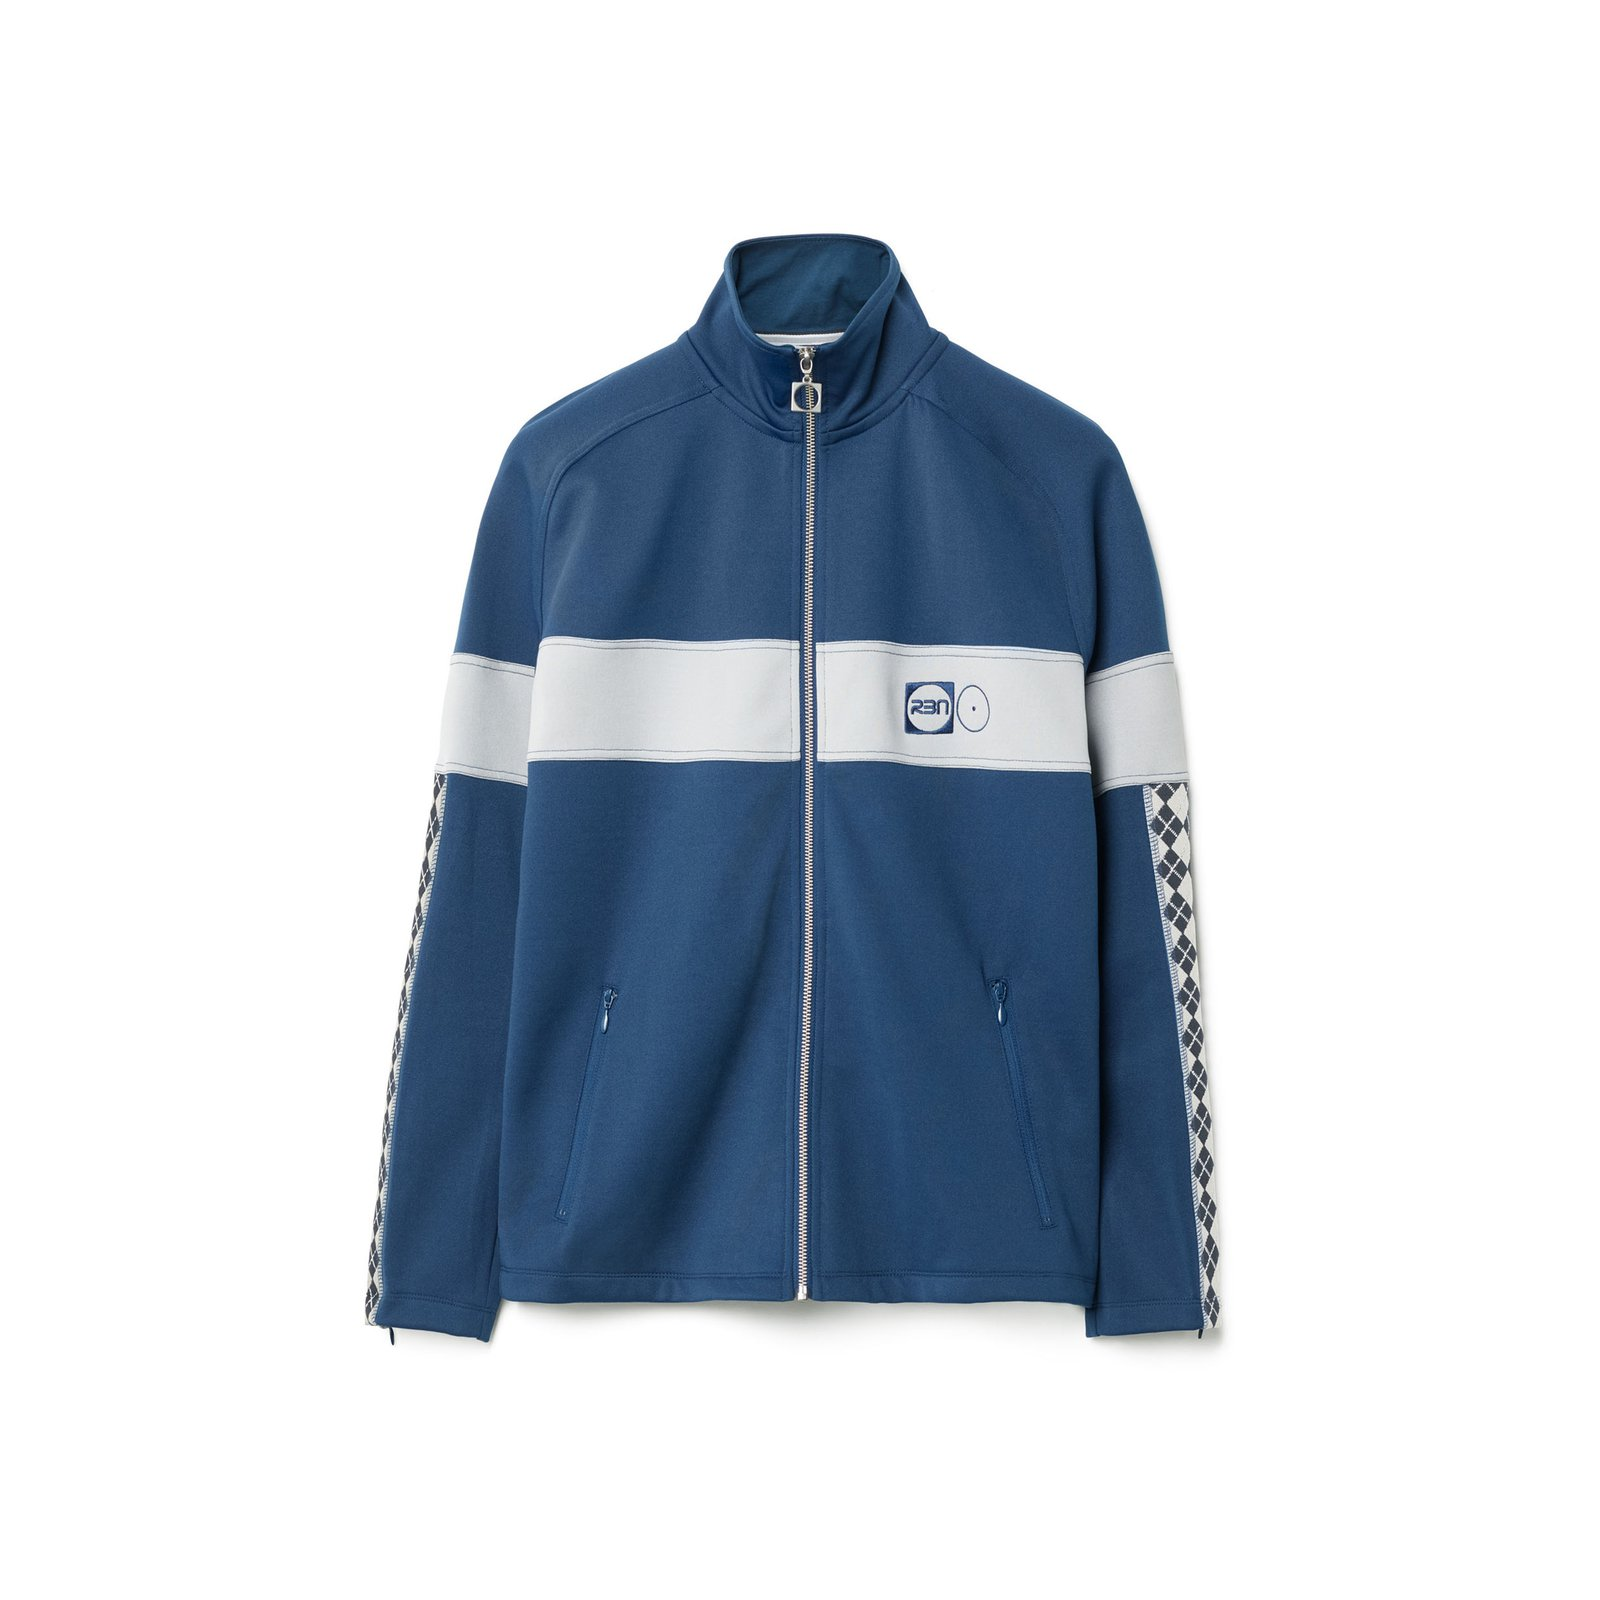 RBN VCT Jacket